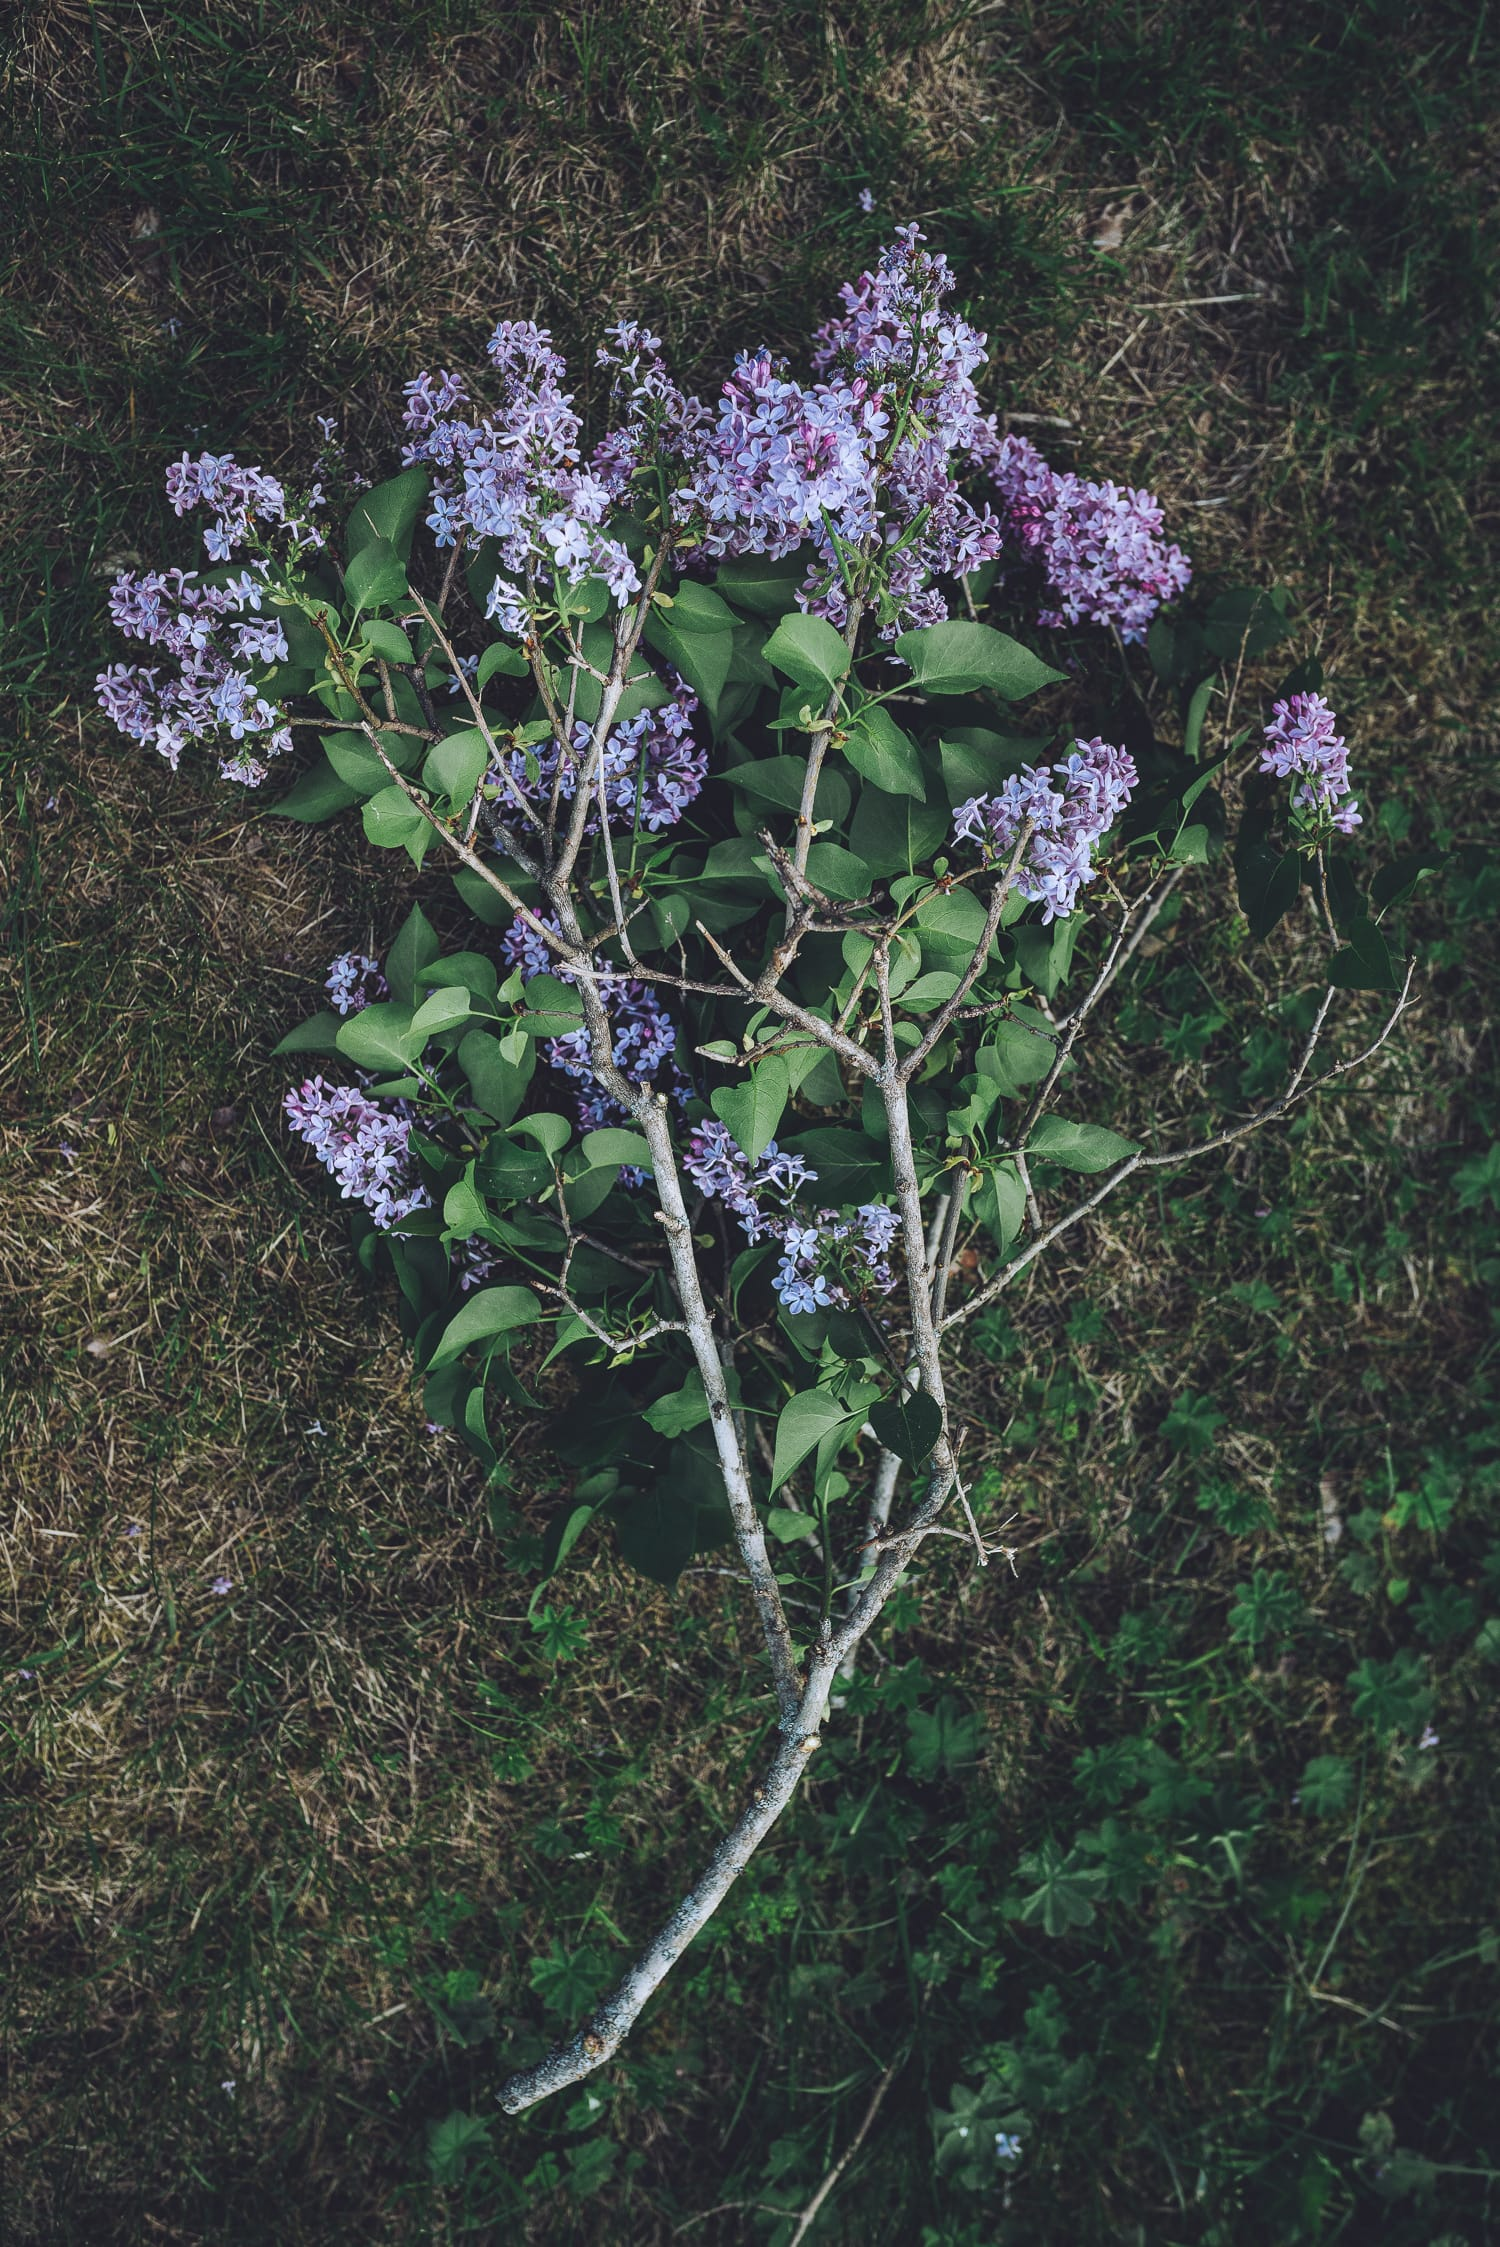 lilac branches on the ground